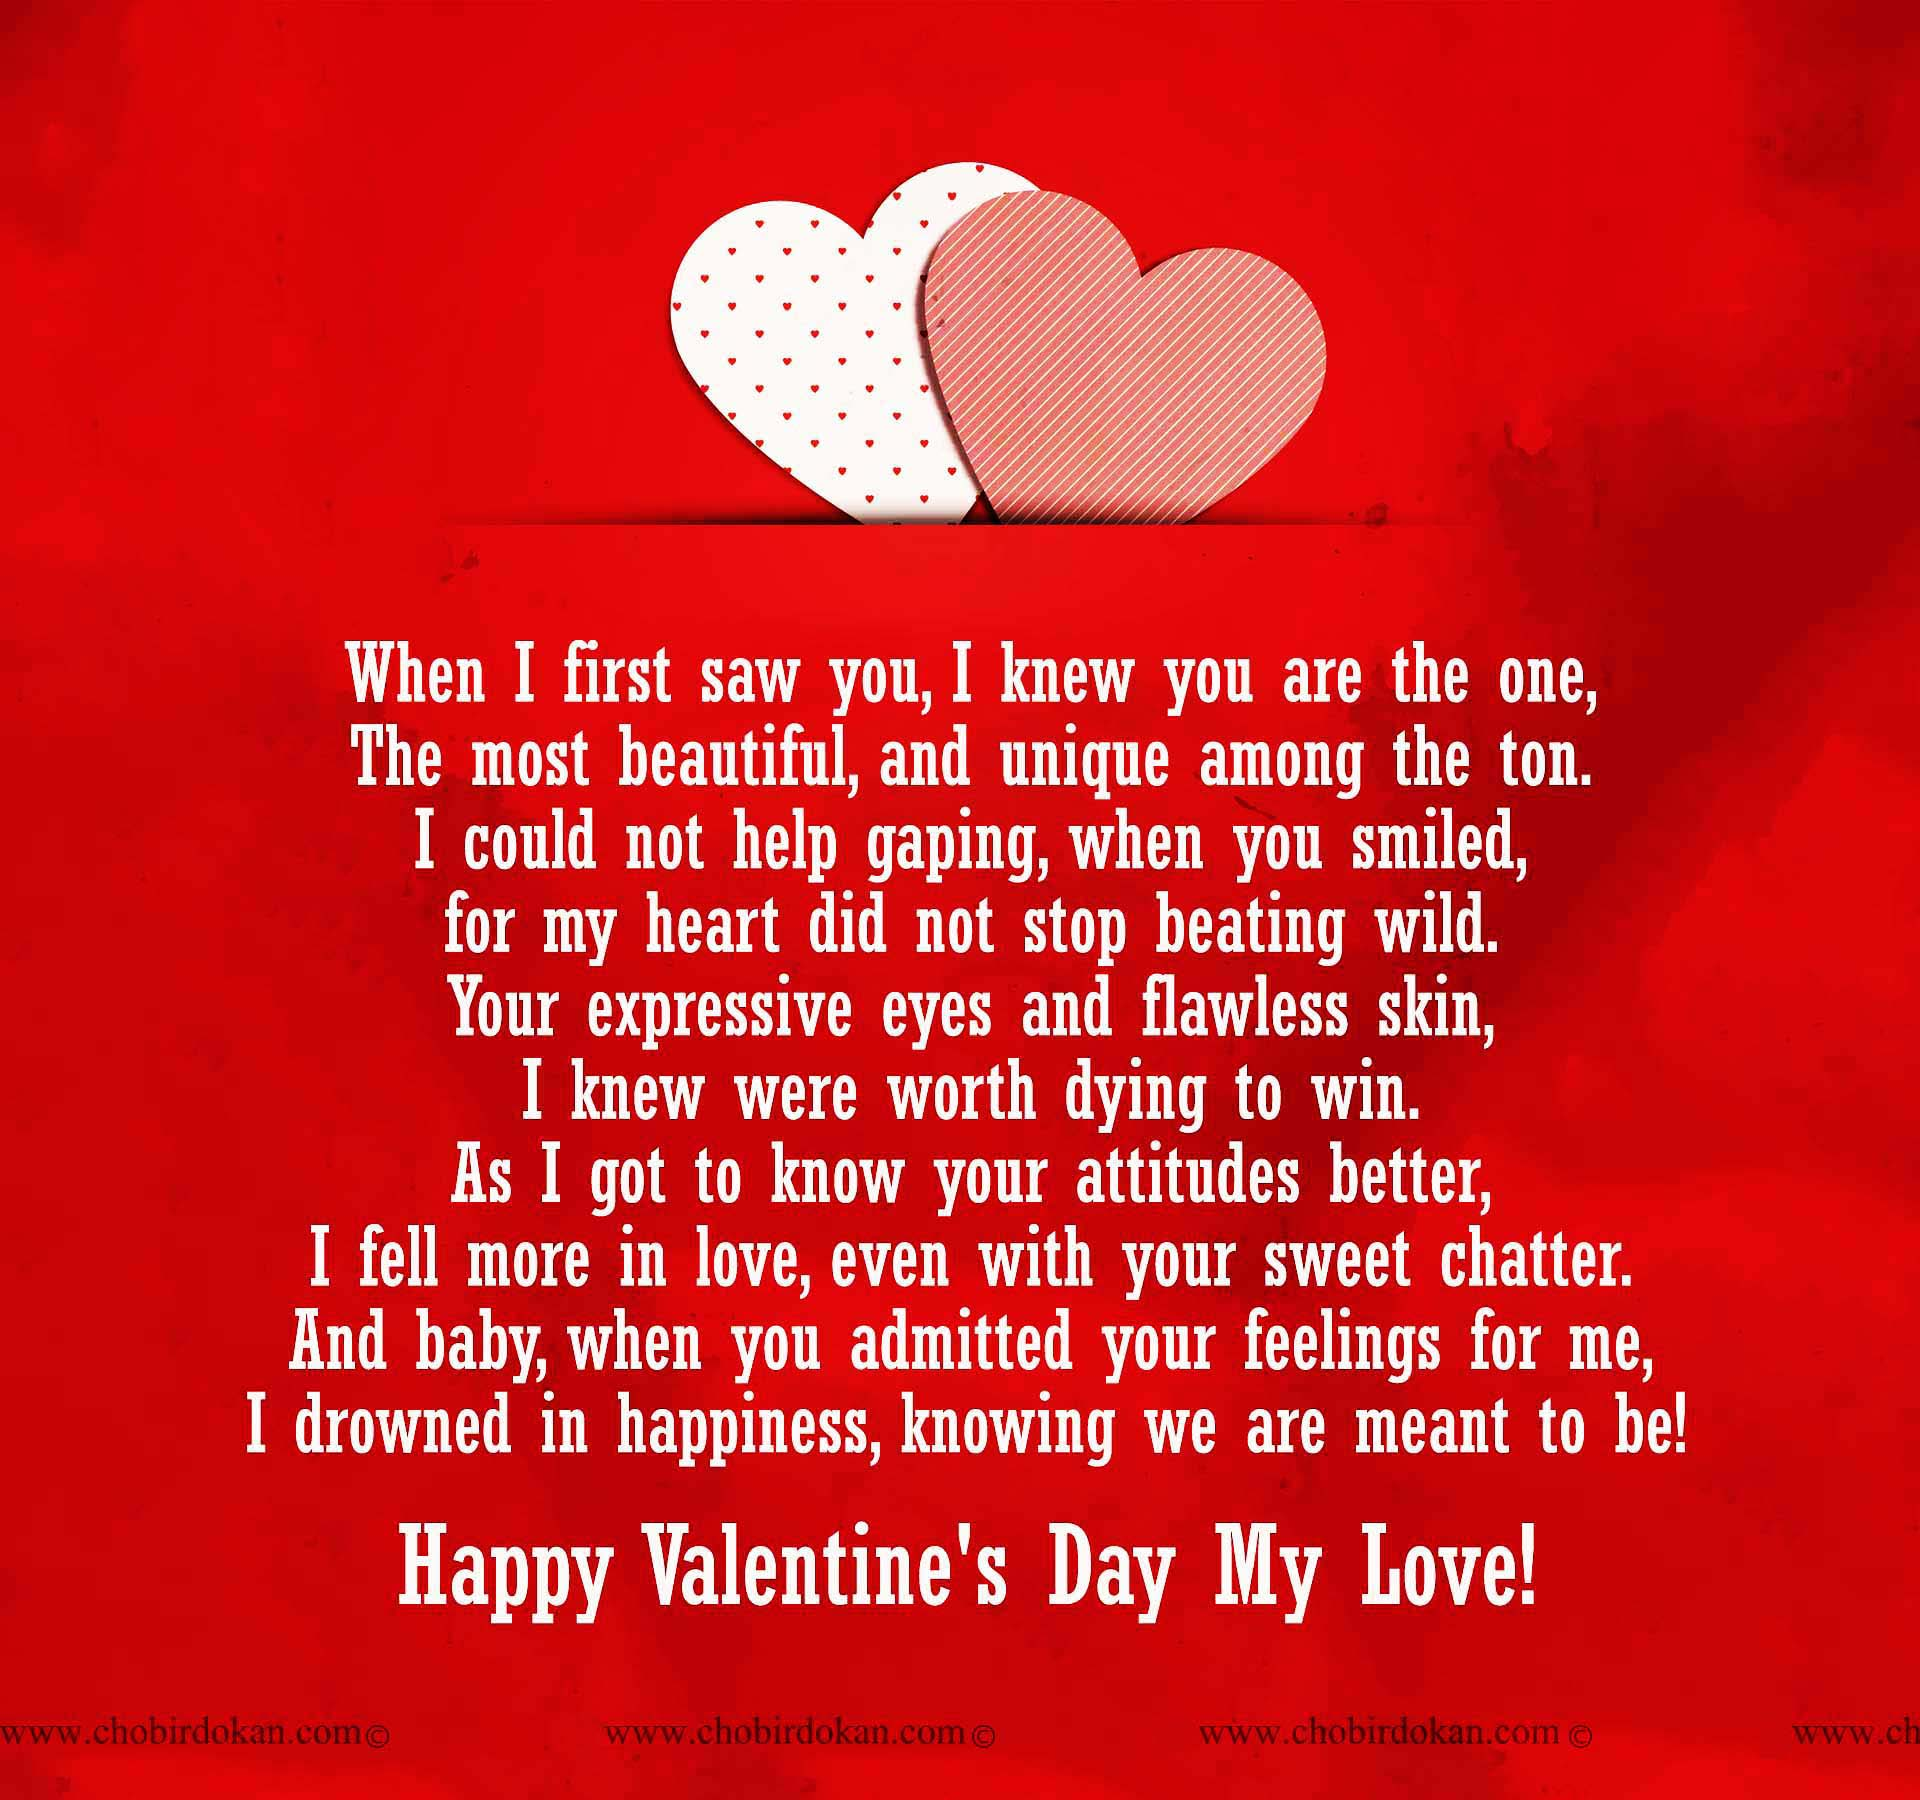 When I First Saw You I Fell In Love Quotes: Happy Valentines Day Poems For Her, For Your Girlfriend Or